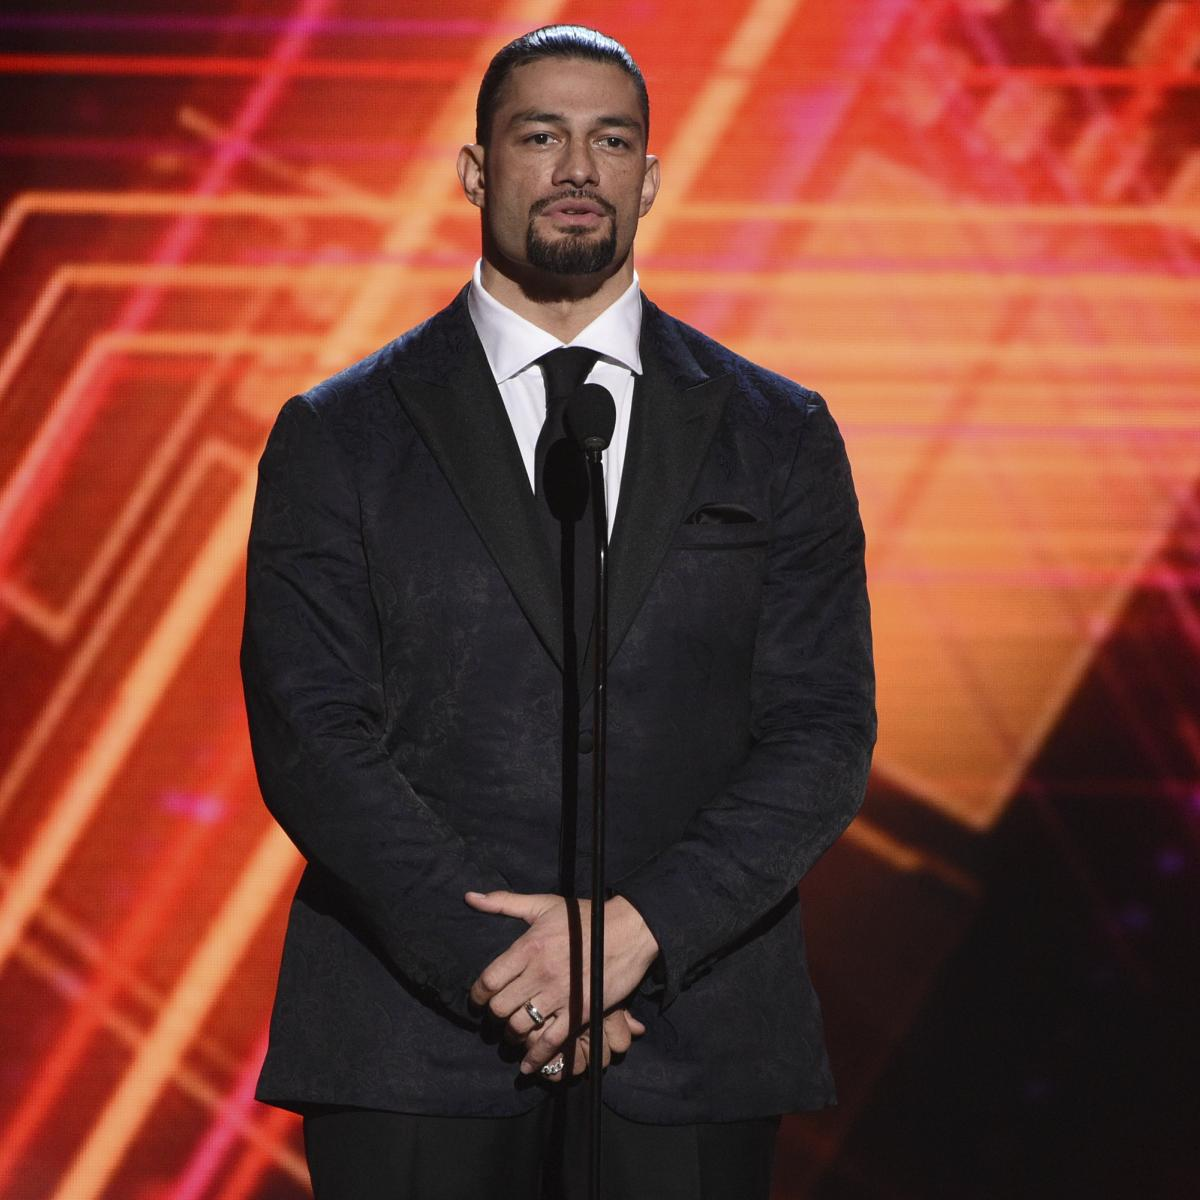 Roman Reigns on Match vs. The Rock; Renee-Vince McMahon; Booker T Talks AEW